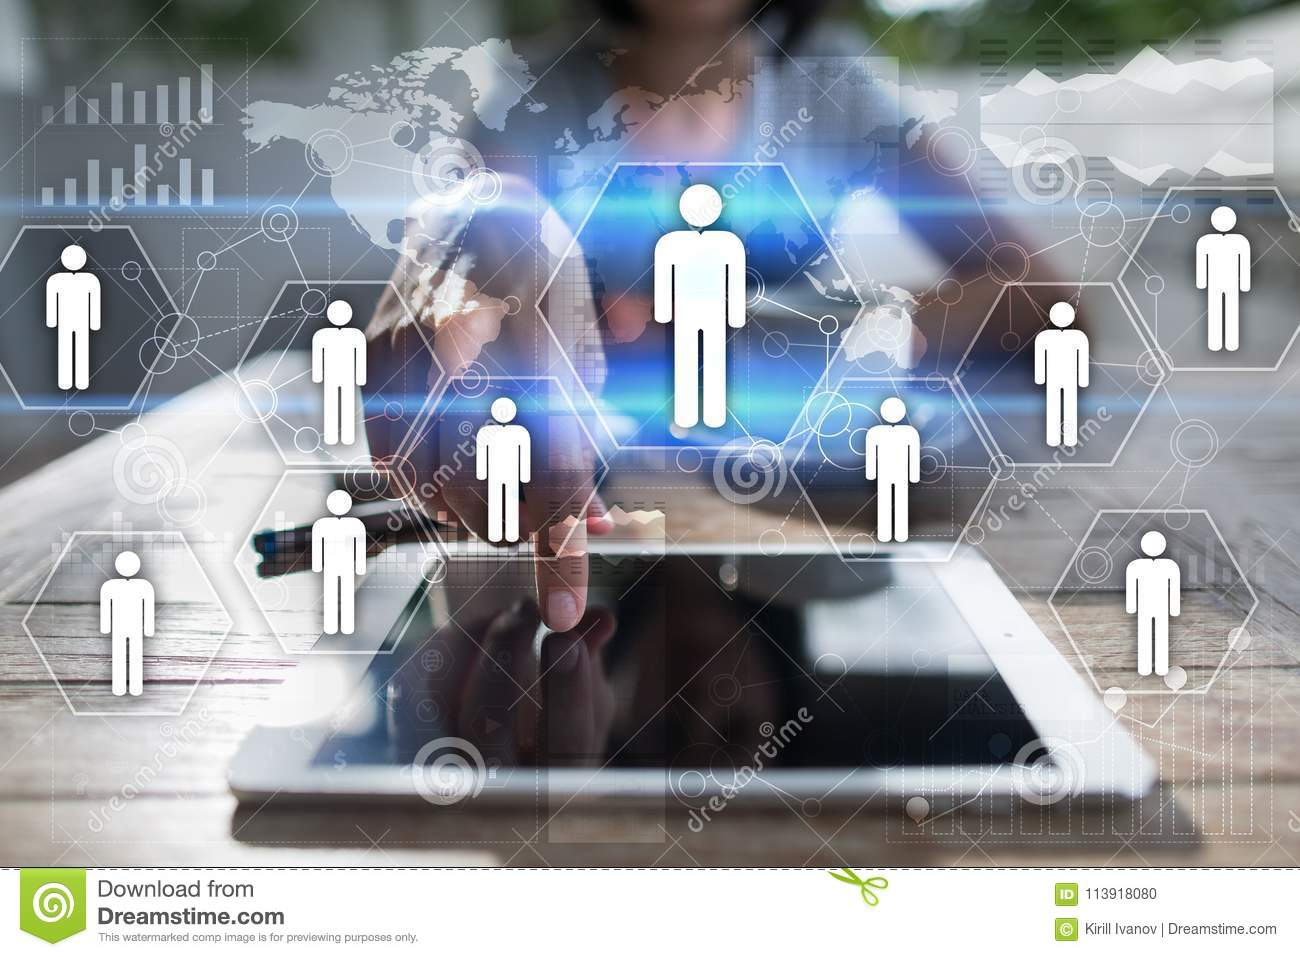 Time Management And Technology: Human Resource Management, HR, Recruitment, Leadership And